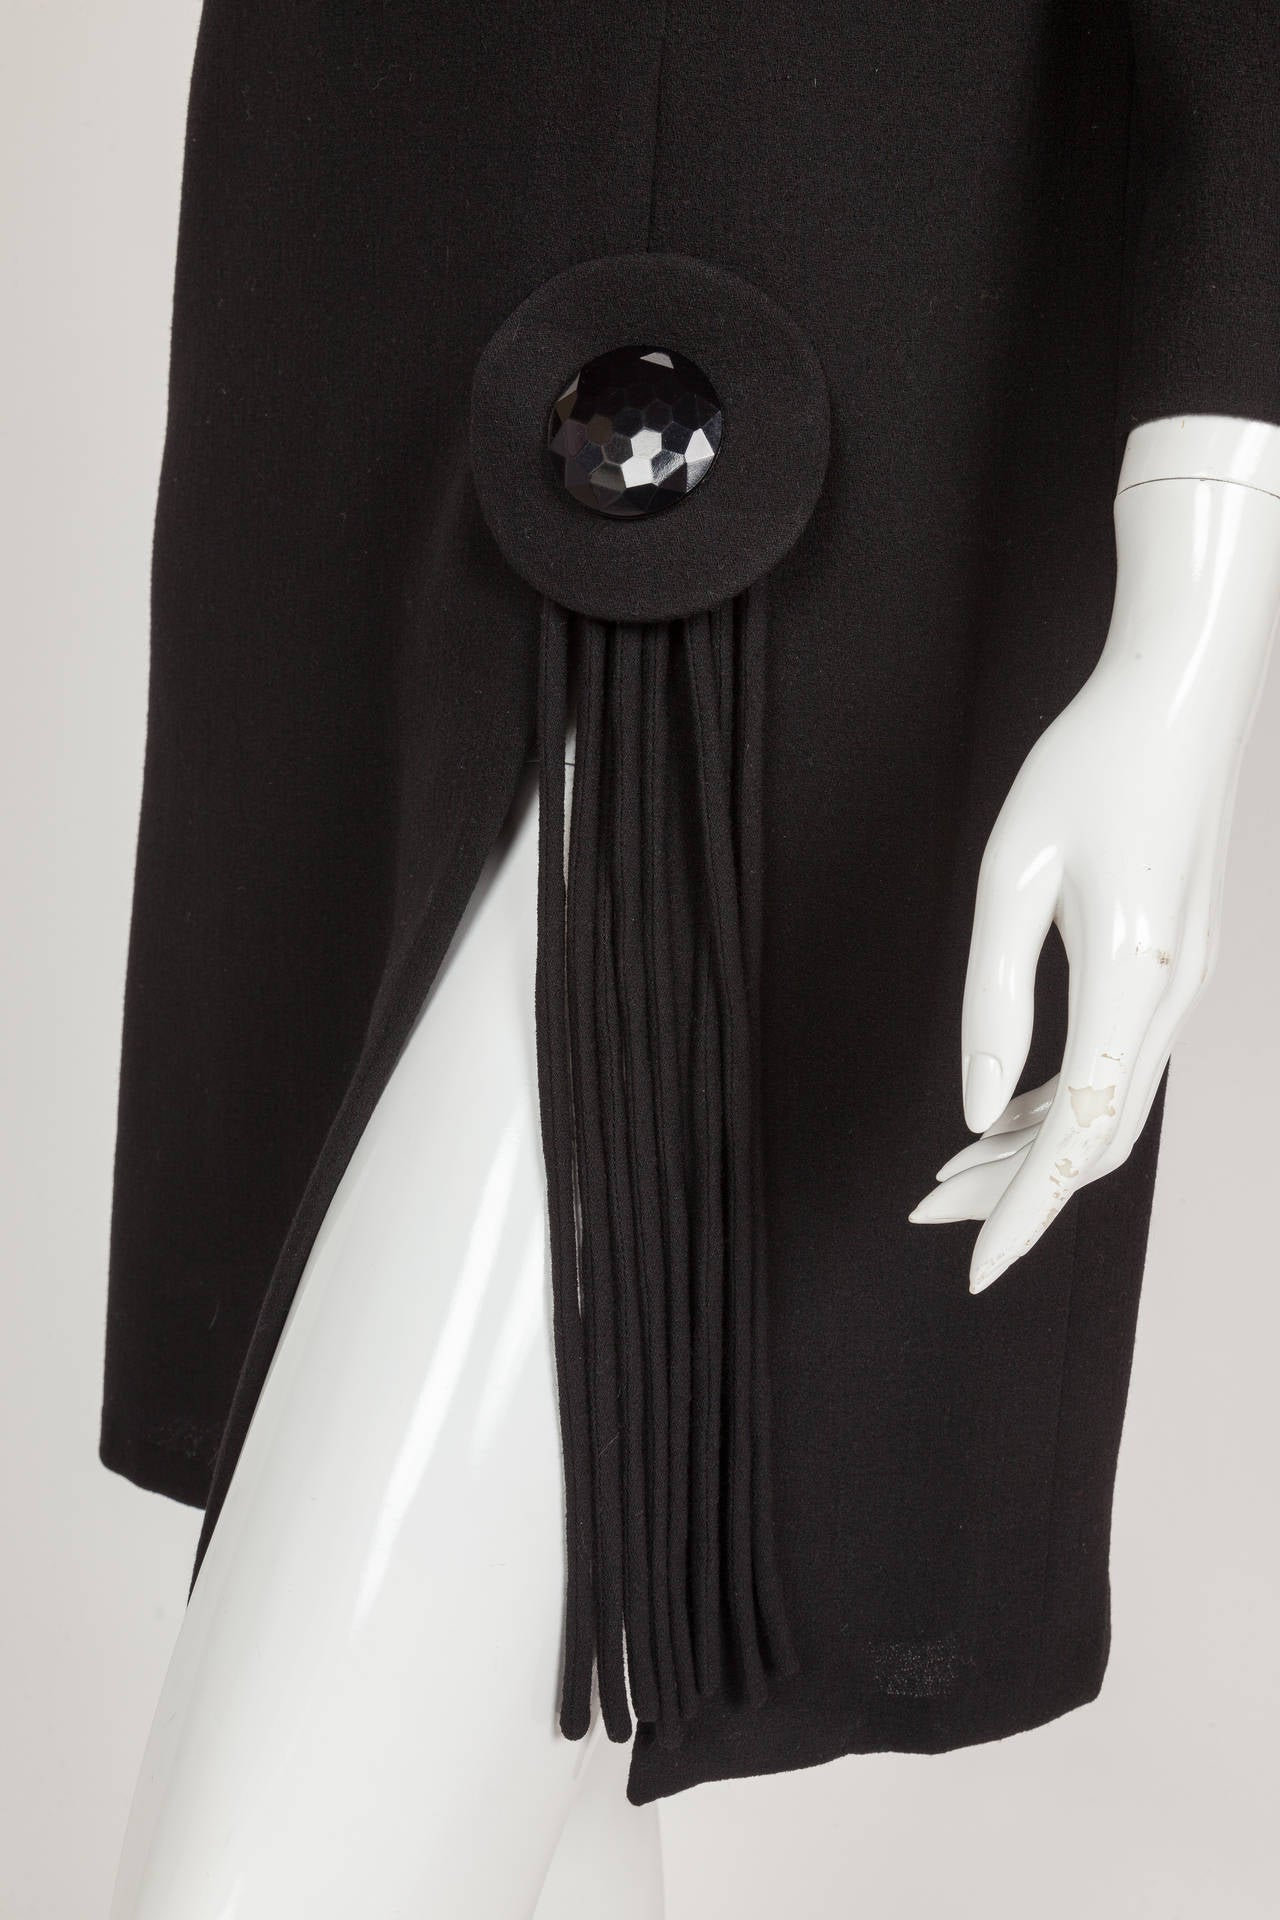 Pierre Cardin Haute Couture Black Wool Cocktail Dress w/Thigh High Slit ca. 1992 7